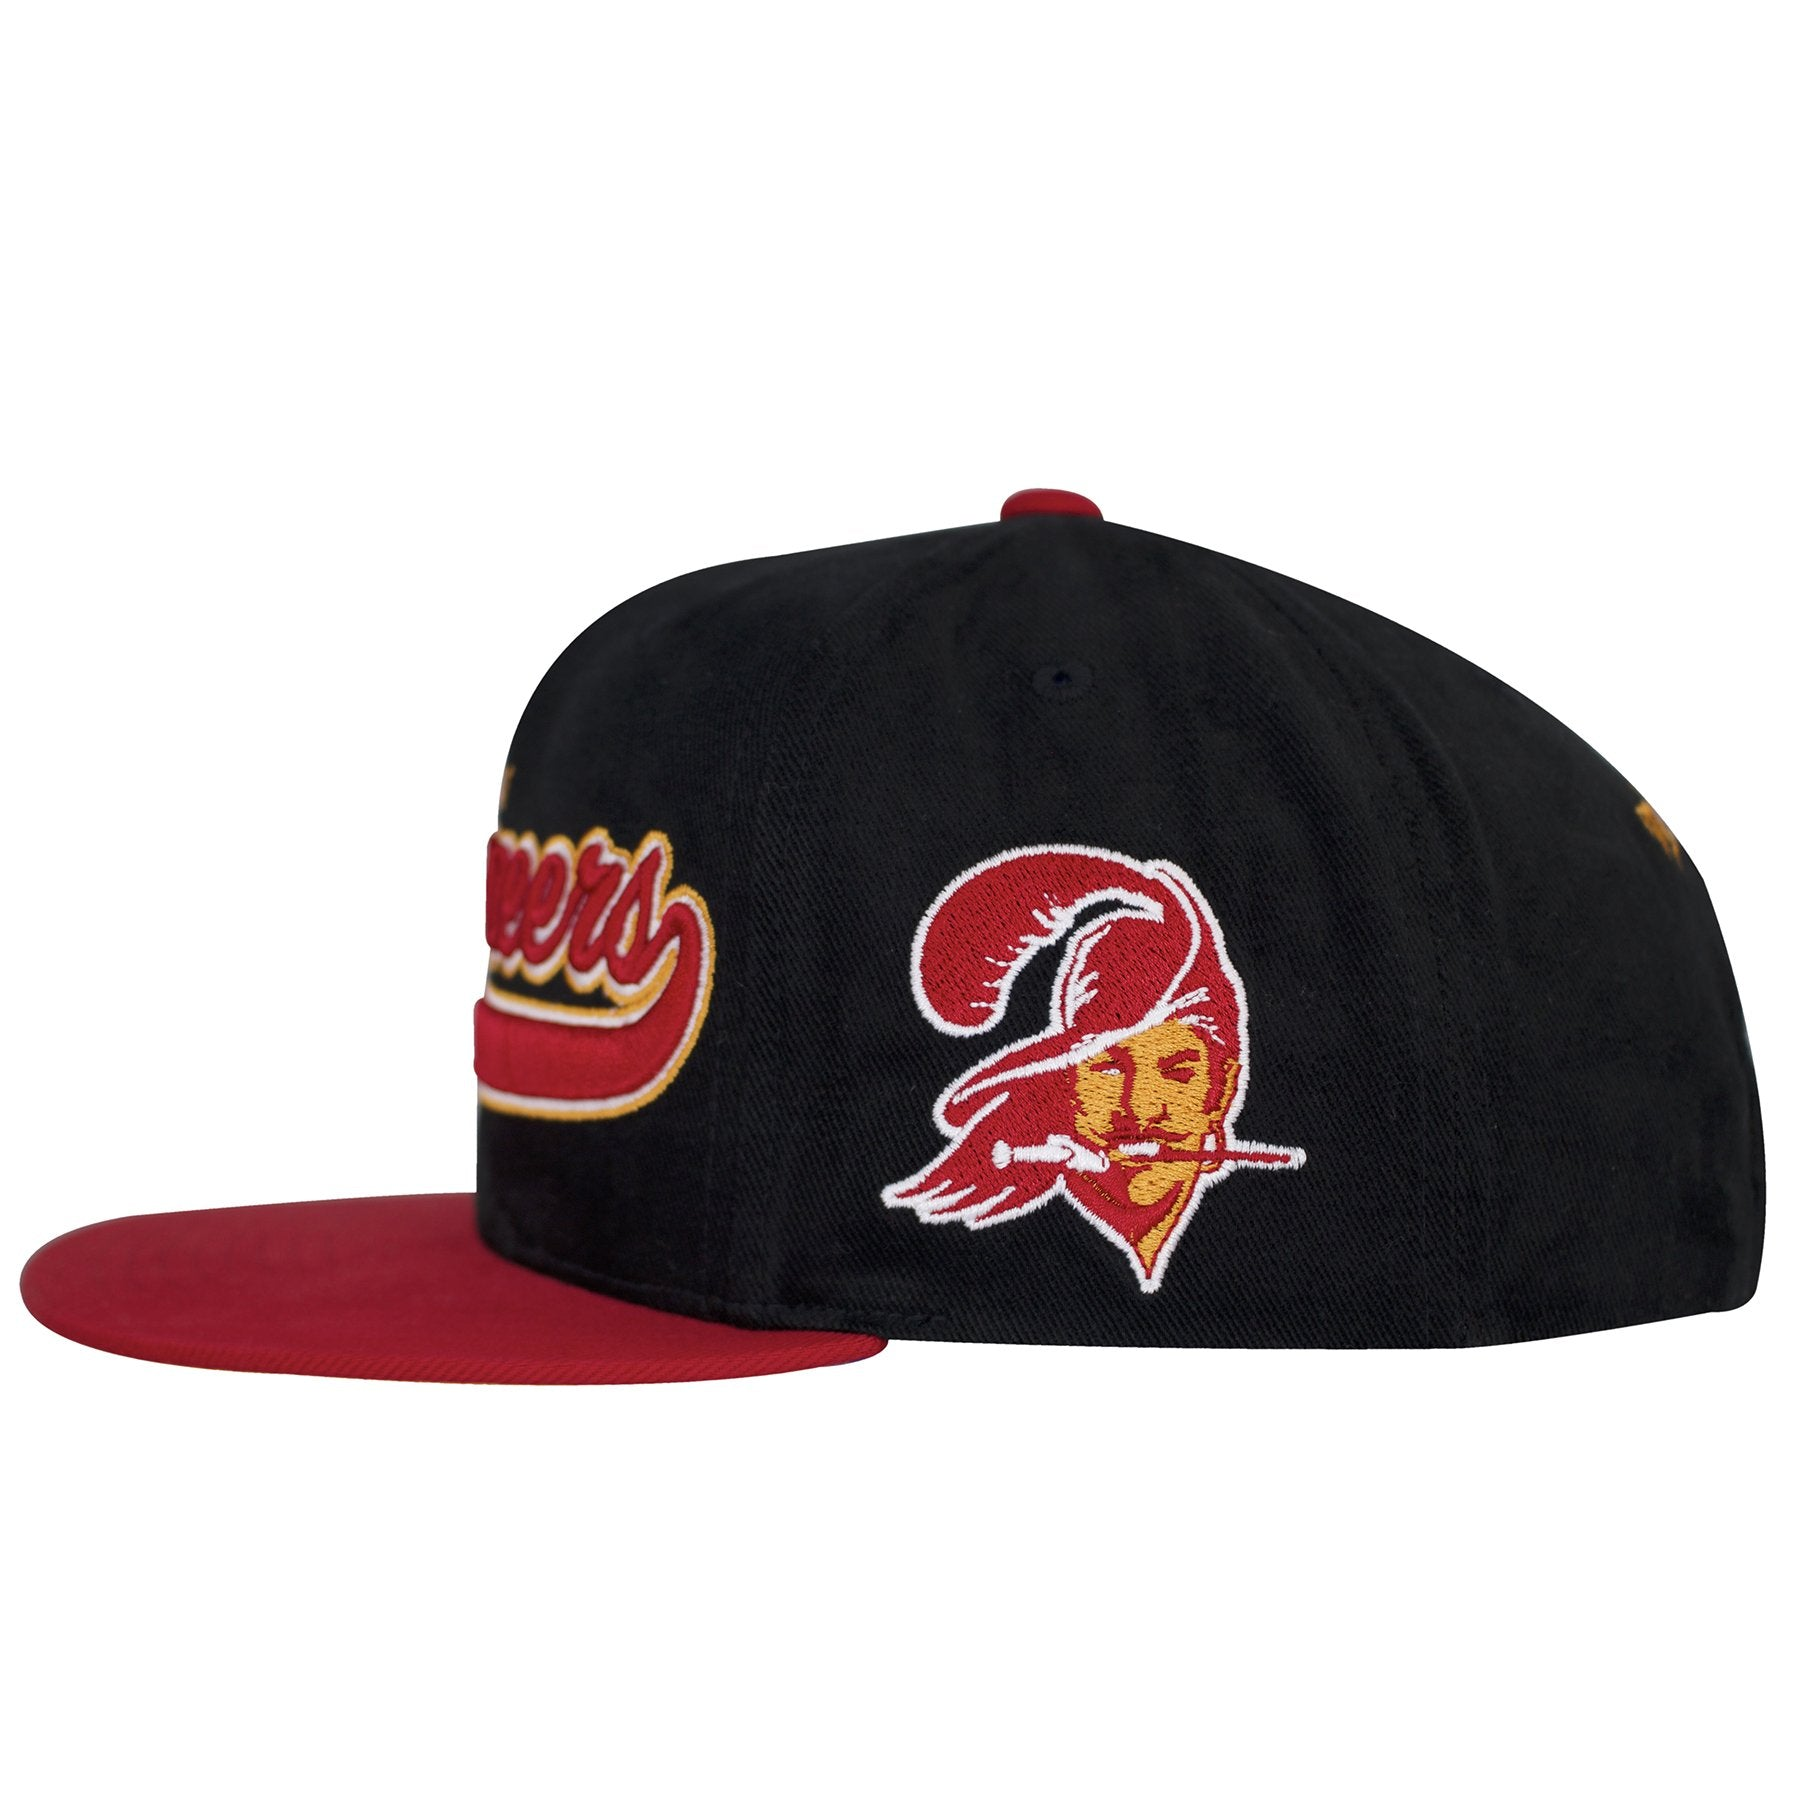 ... on the left side of the tampa bay buccaneers retro snapback hat is the  vintage buccaneers ... 2363f172daf